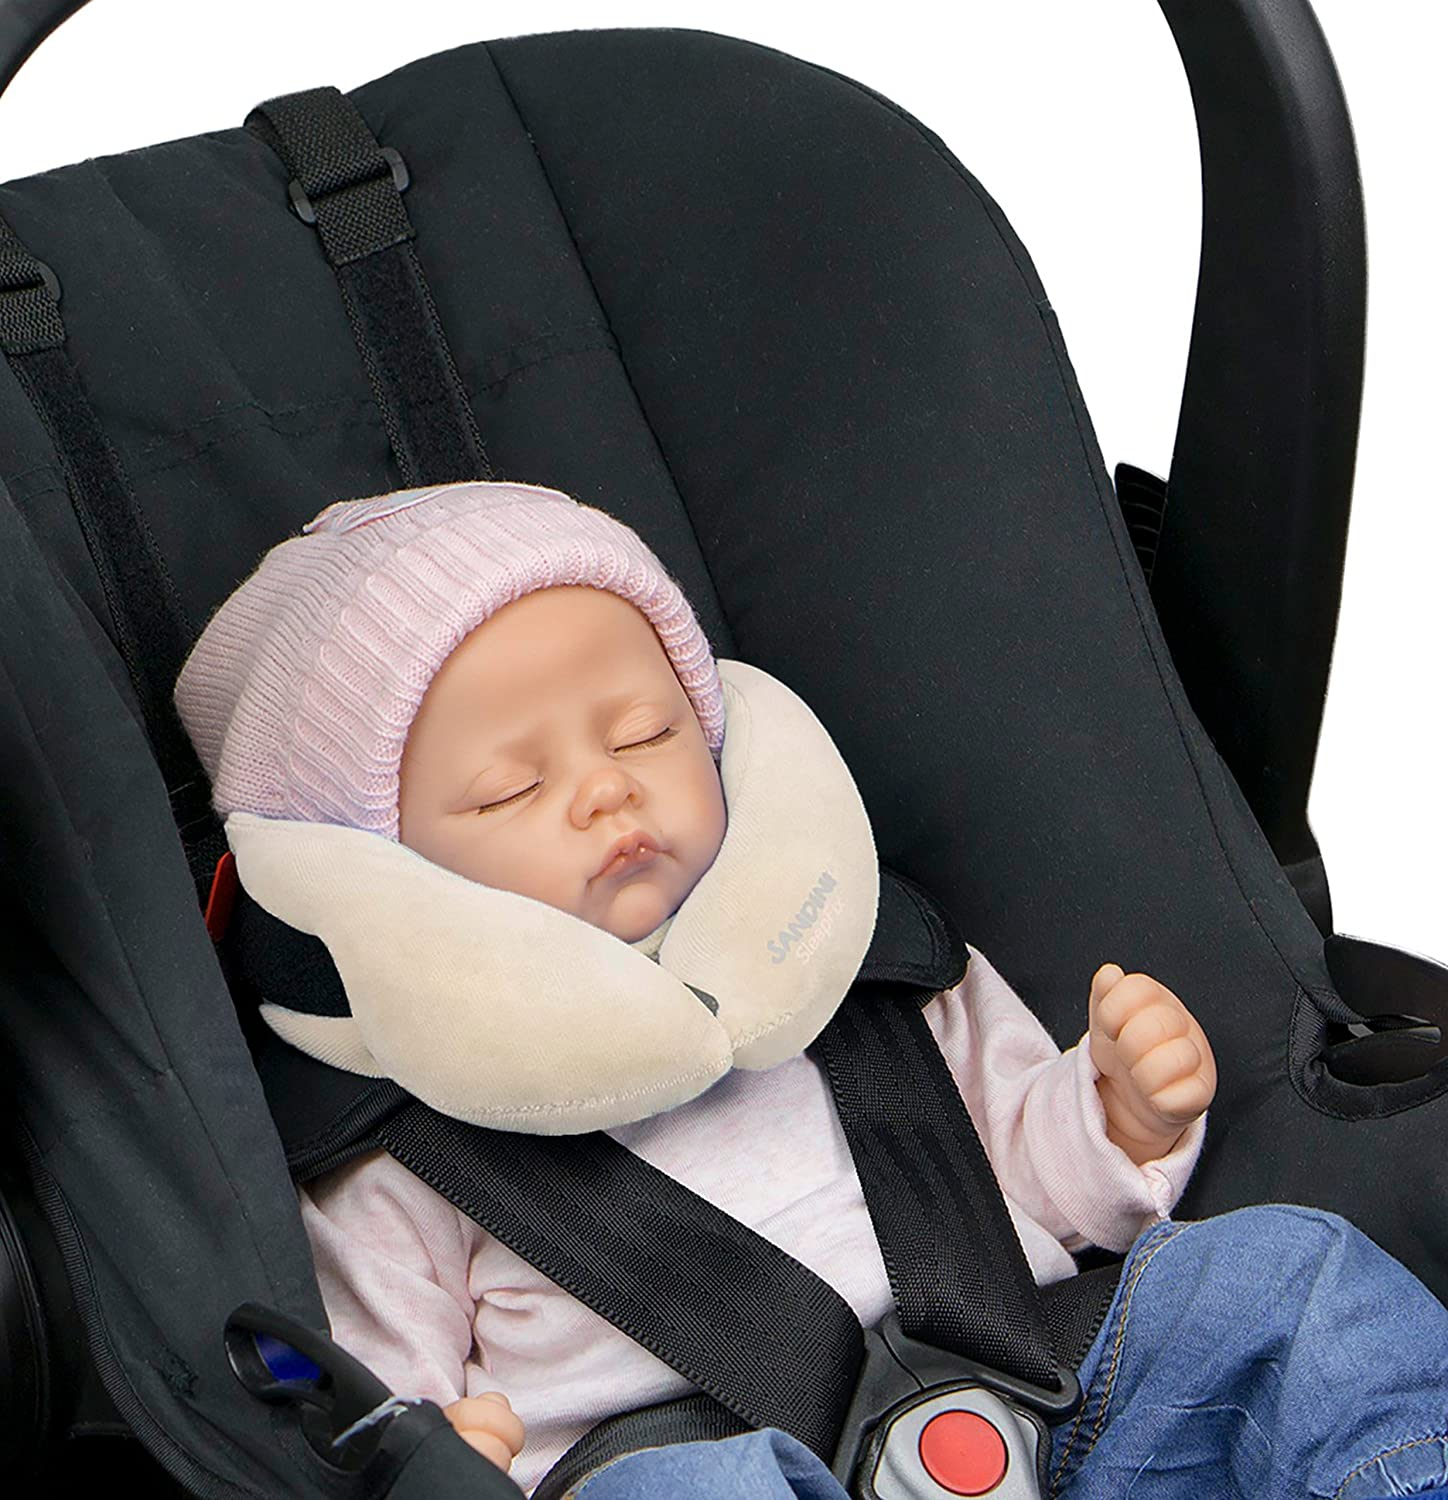 SANDINI SleepFix Baby – Baby sleeping pillow/Neck Pillow with support function – Child seat accessory for car/bike/ travel – Head rest/Baby seat reducer/Prevents head from tilting while sleeping SANDINI GmbH